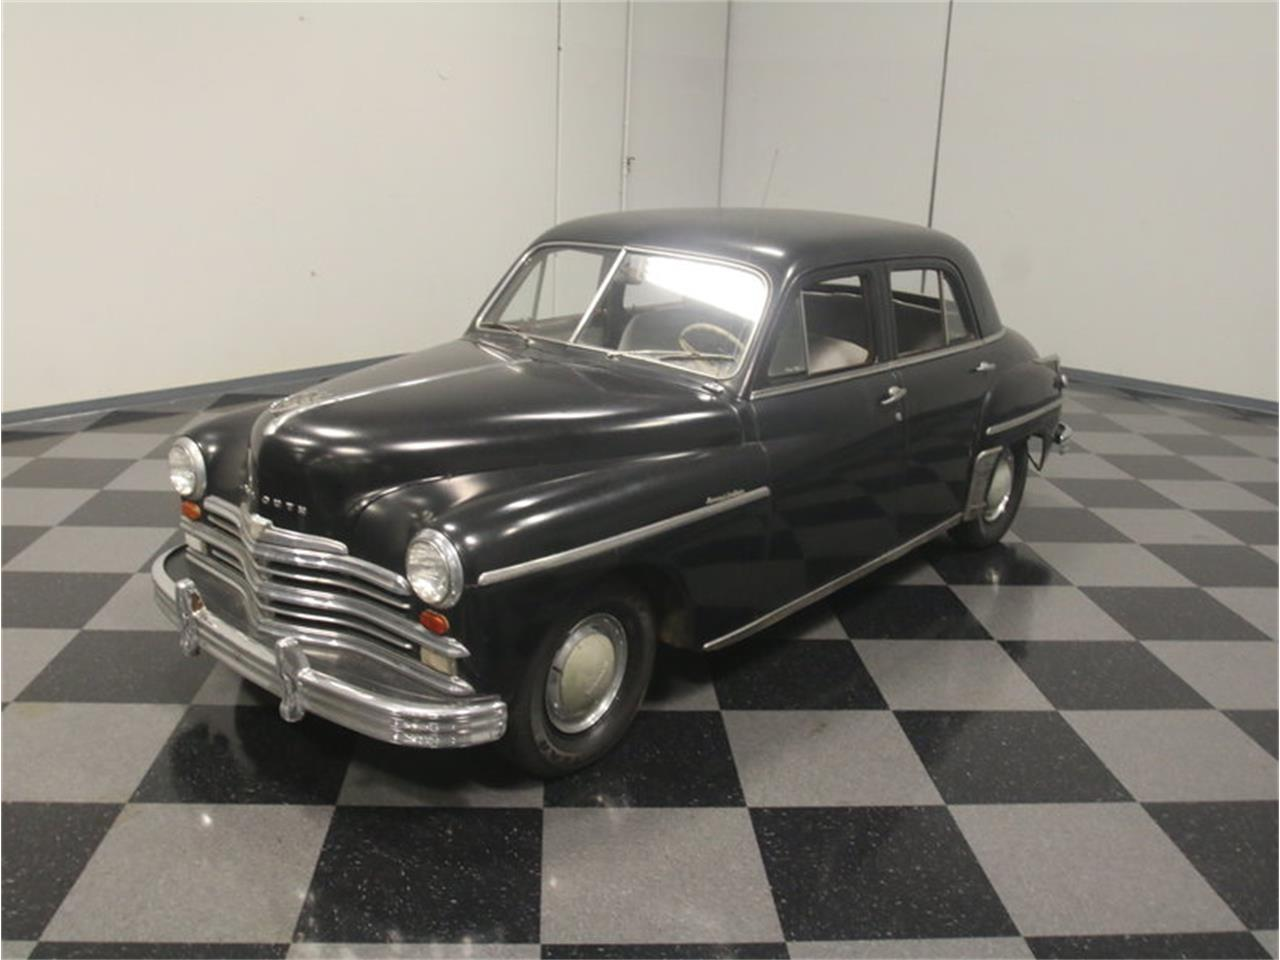 Large Picture of Classic 1949 Plymouth Special Deluxe located in Georgia - $8,995.00 Offered by Streetside Classics - Atlanta - L551